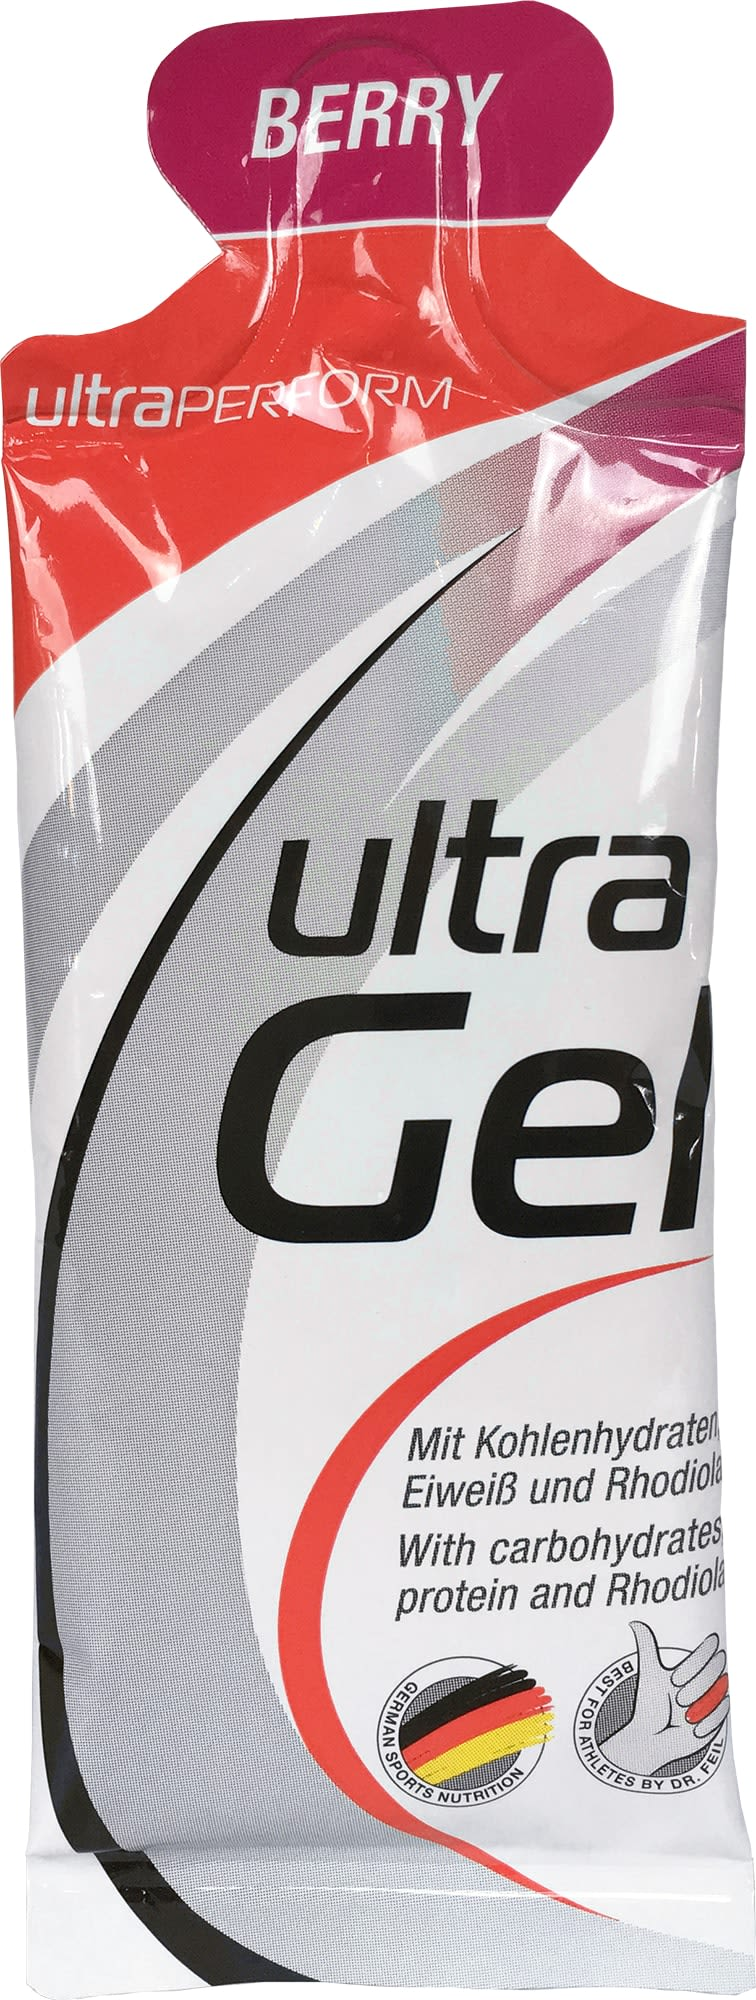 ultraPERFORM ultraGel - 35g - Berry